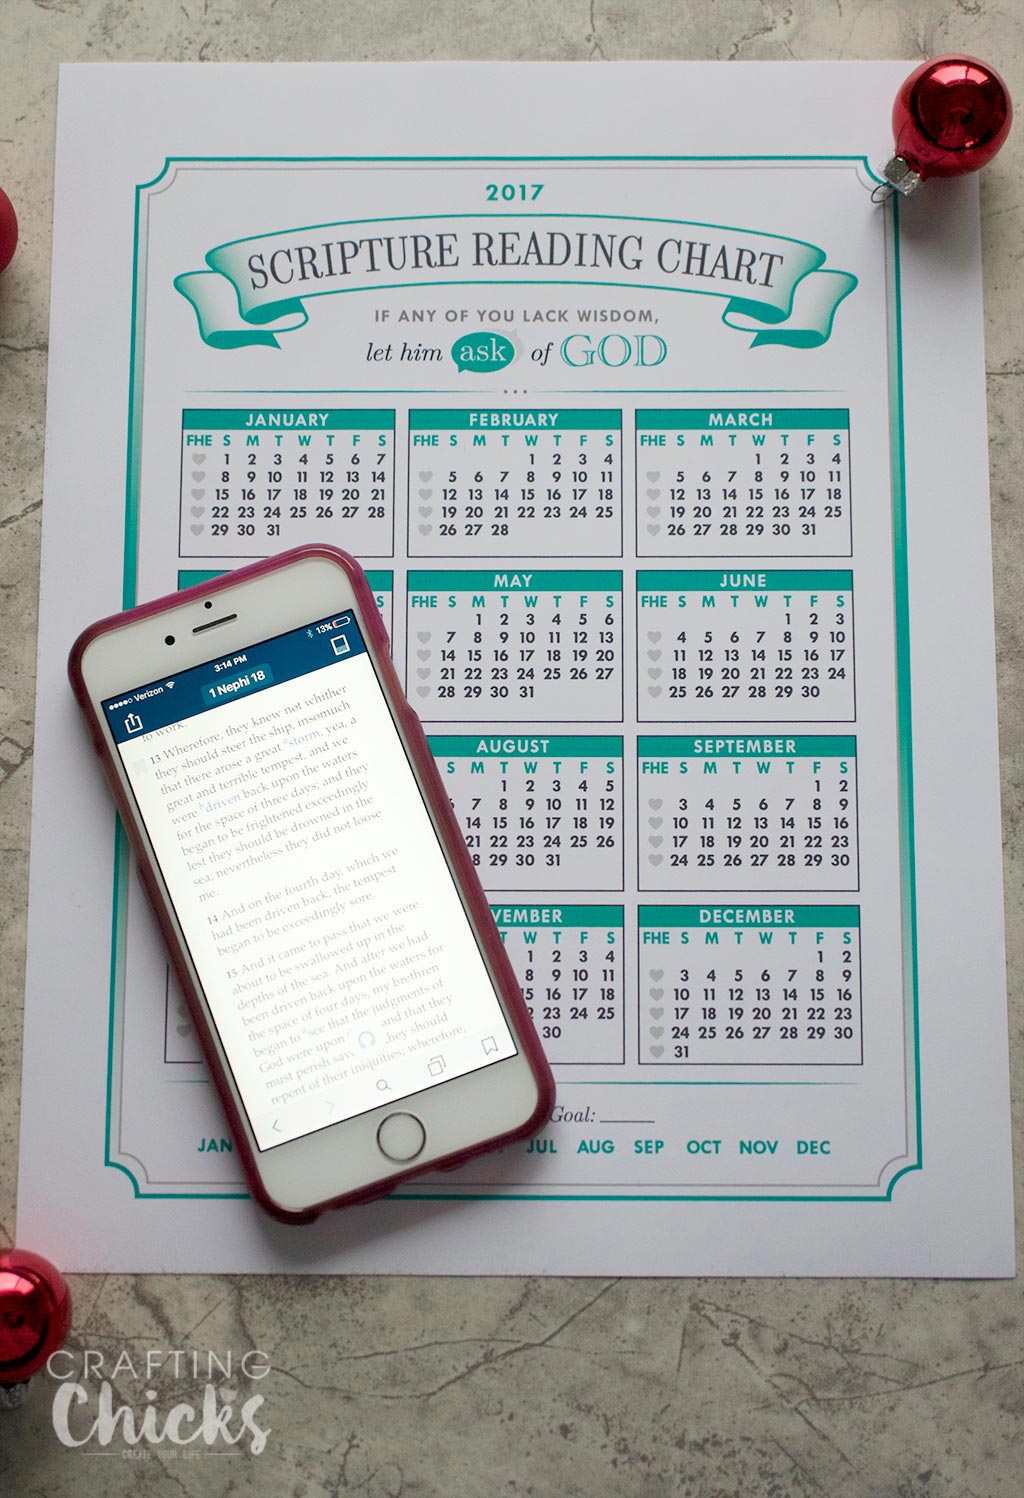 2017 Scripture Reading Chart Printable